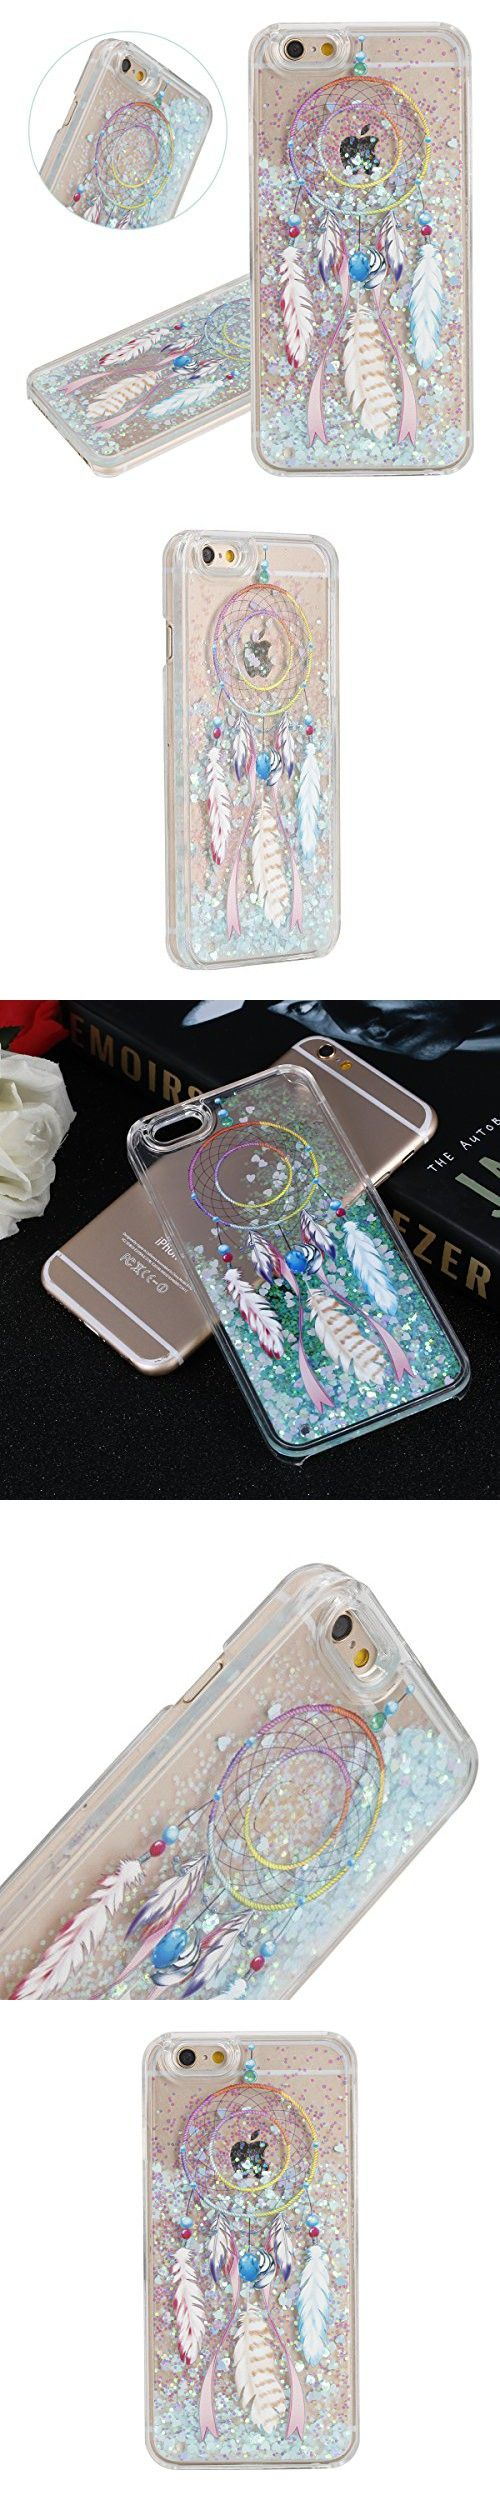 "IKASEFU Funny Novelty[Flowing Glitter Blue Hearts]Colorful Dreamcatcher Hard Bling Shiny Clear Liquid Plastic Case Cover for iPhone 6 Plus/6S Plus 5.5""-Hearts,Colorful Dreamcatcher"